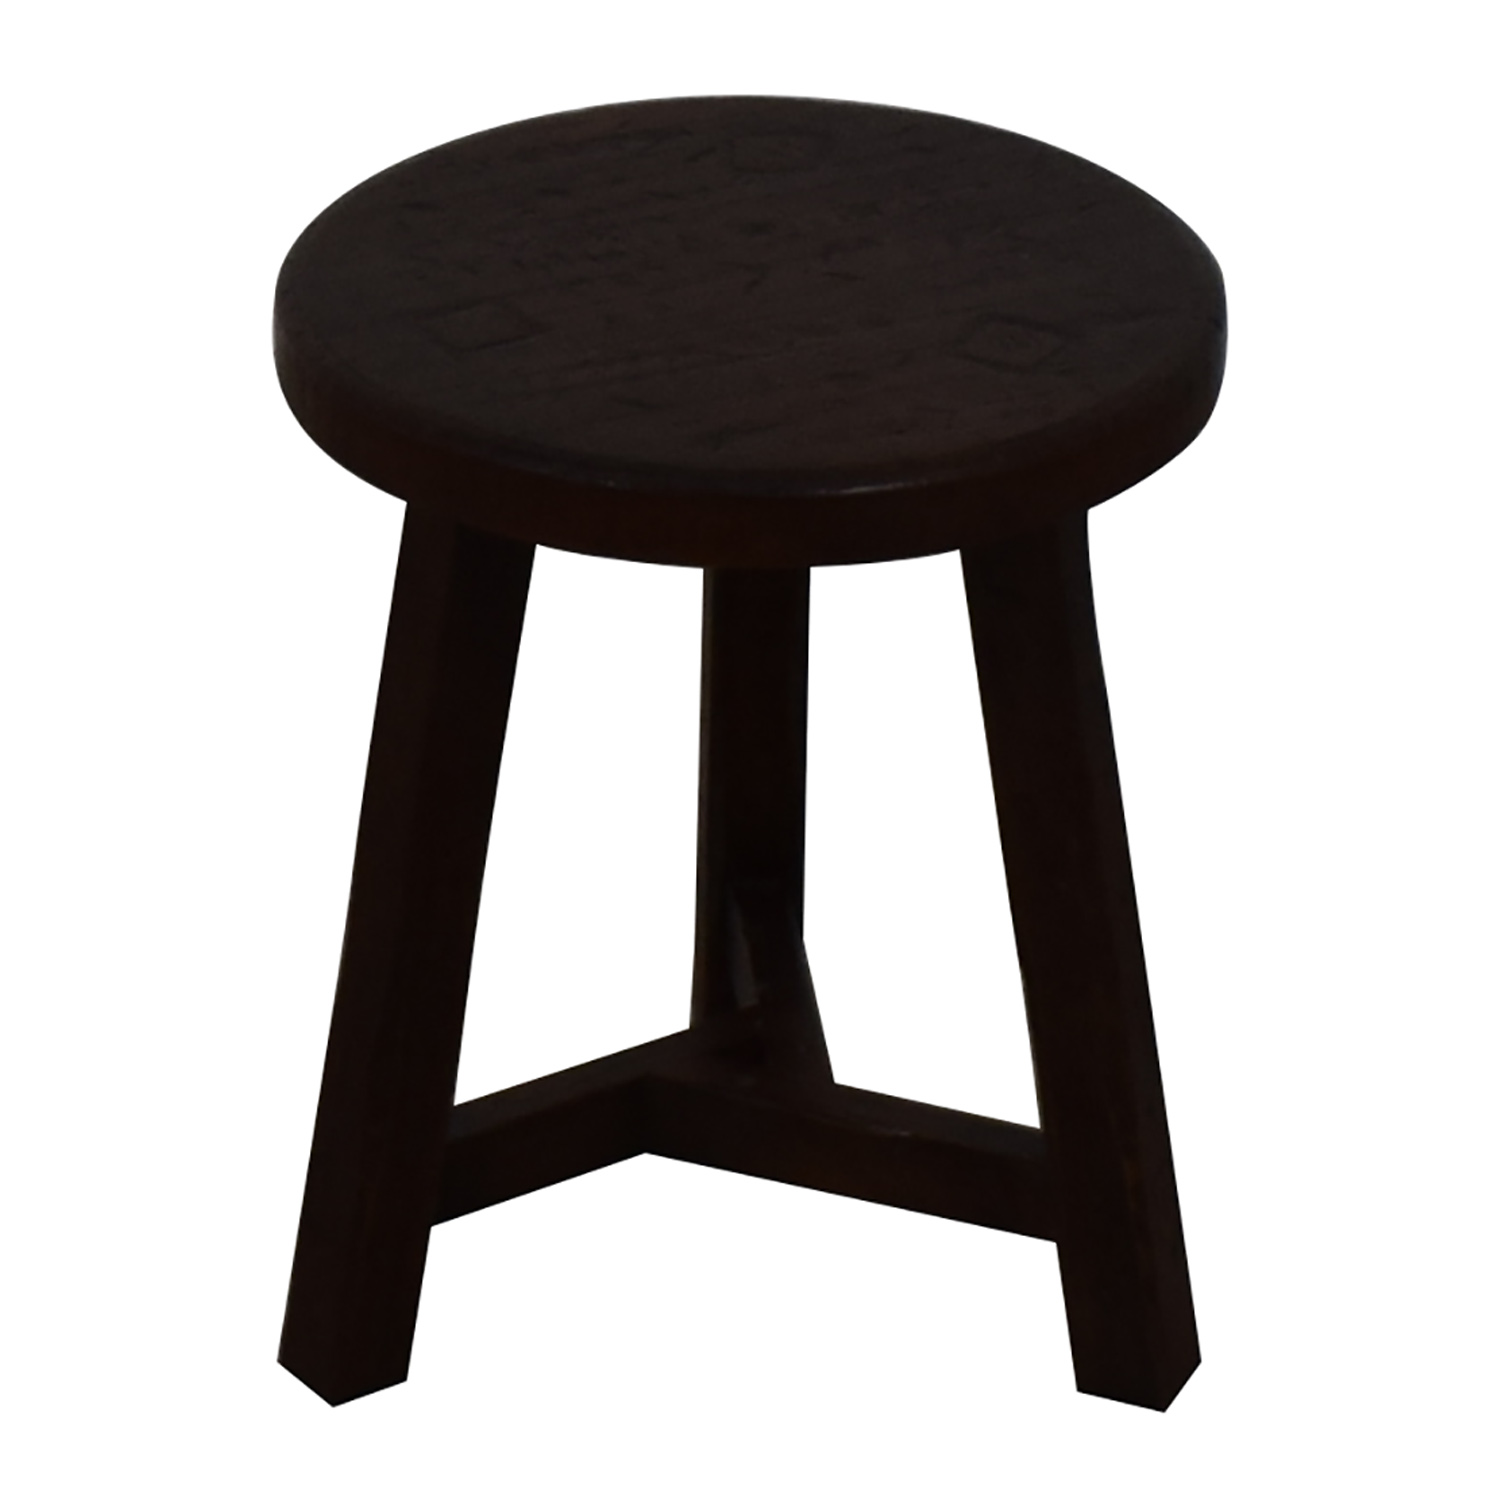 Cool 73 Off Pottery Barn Pottery Barn Colby Short Stool Chairs Machost Co Dining Chair Design Ideas Machostcouk